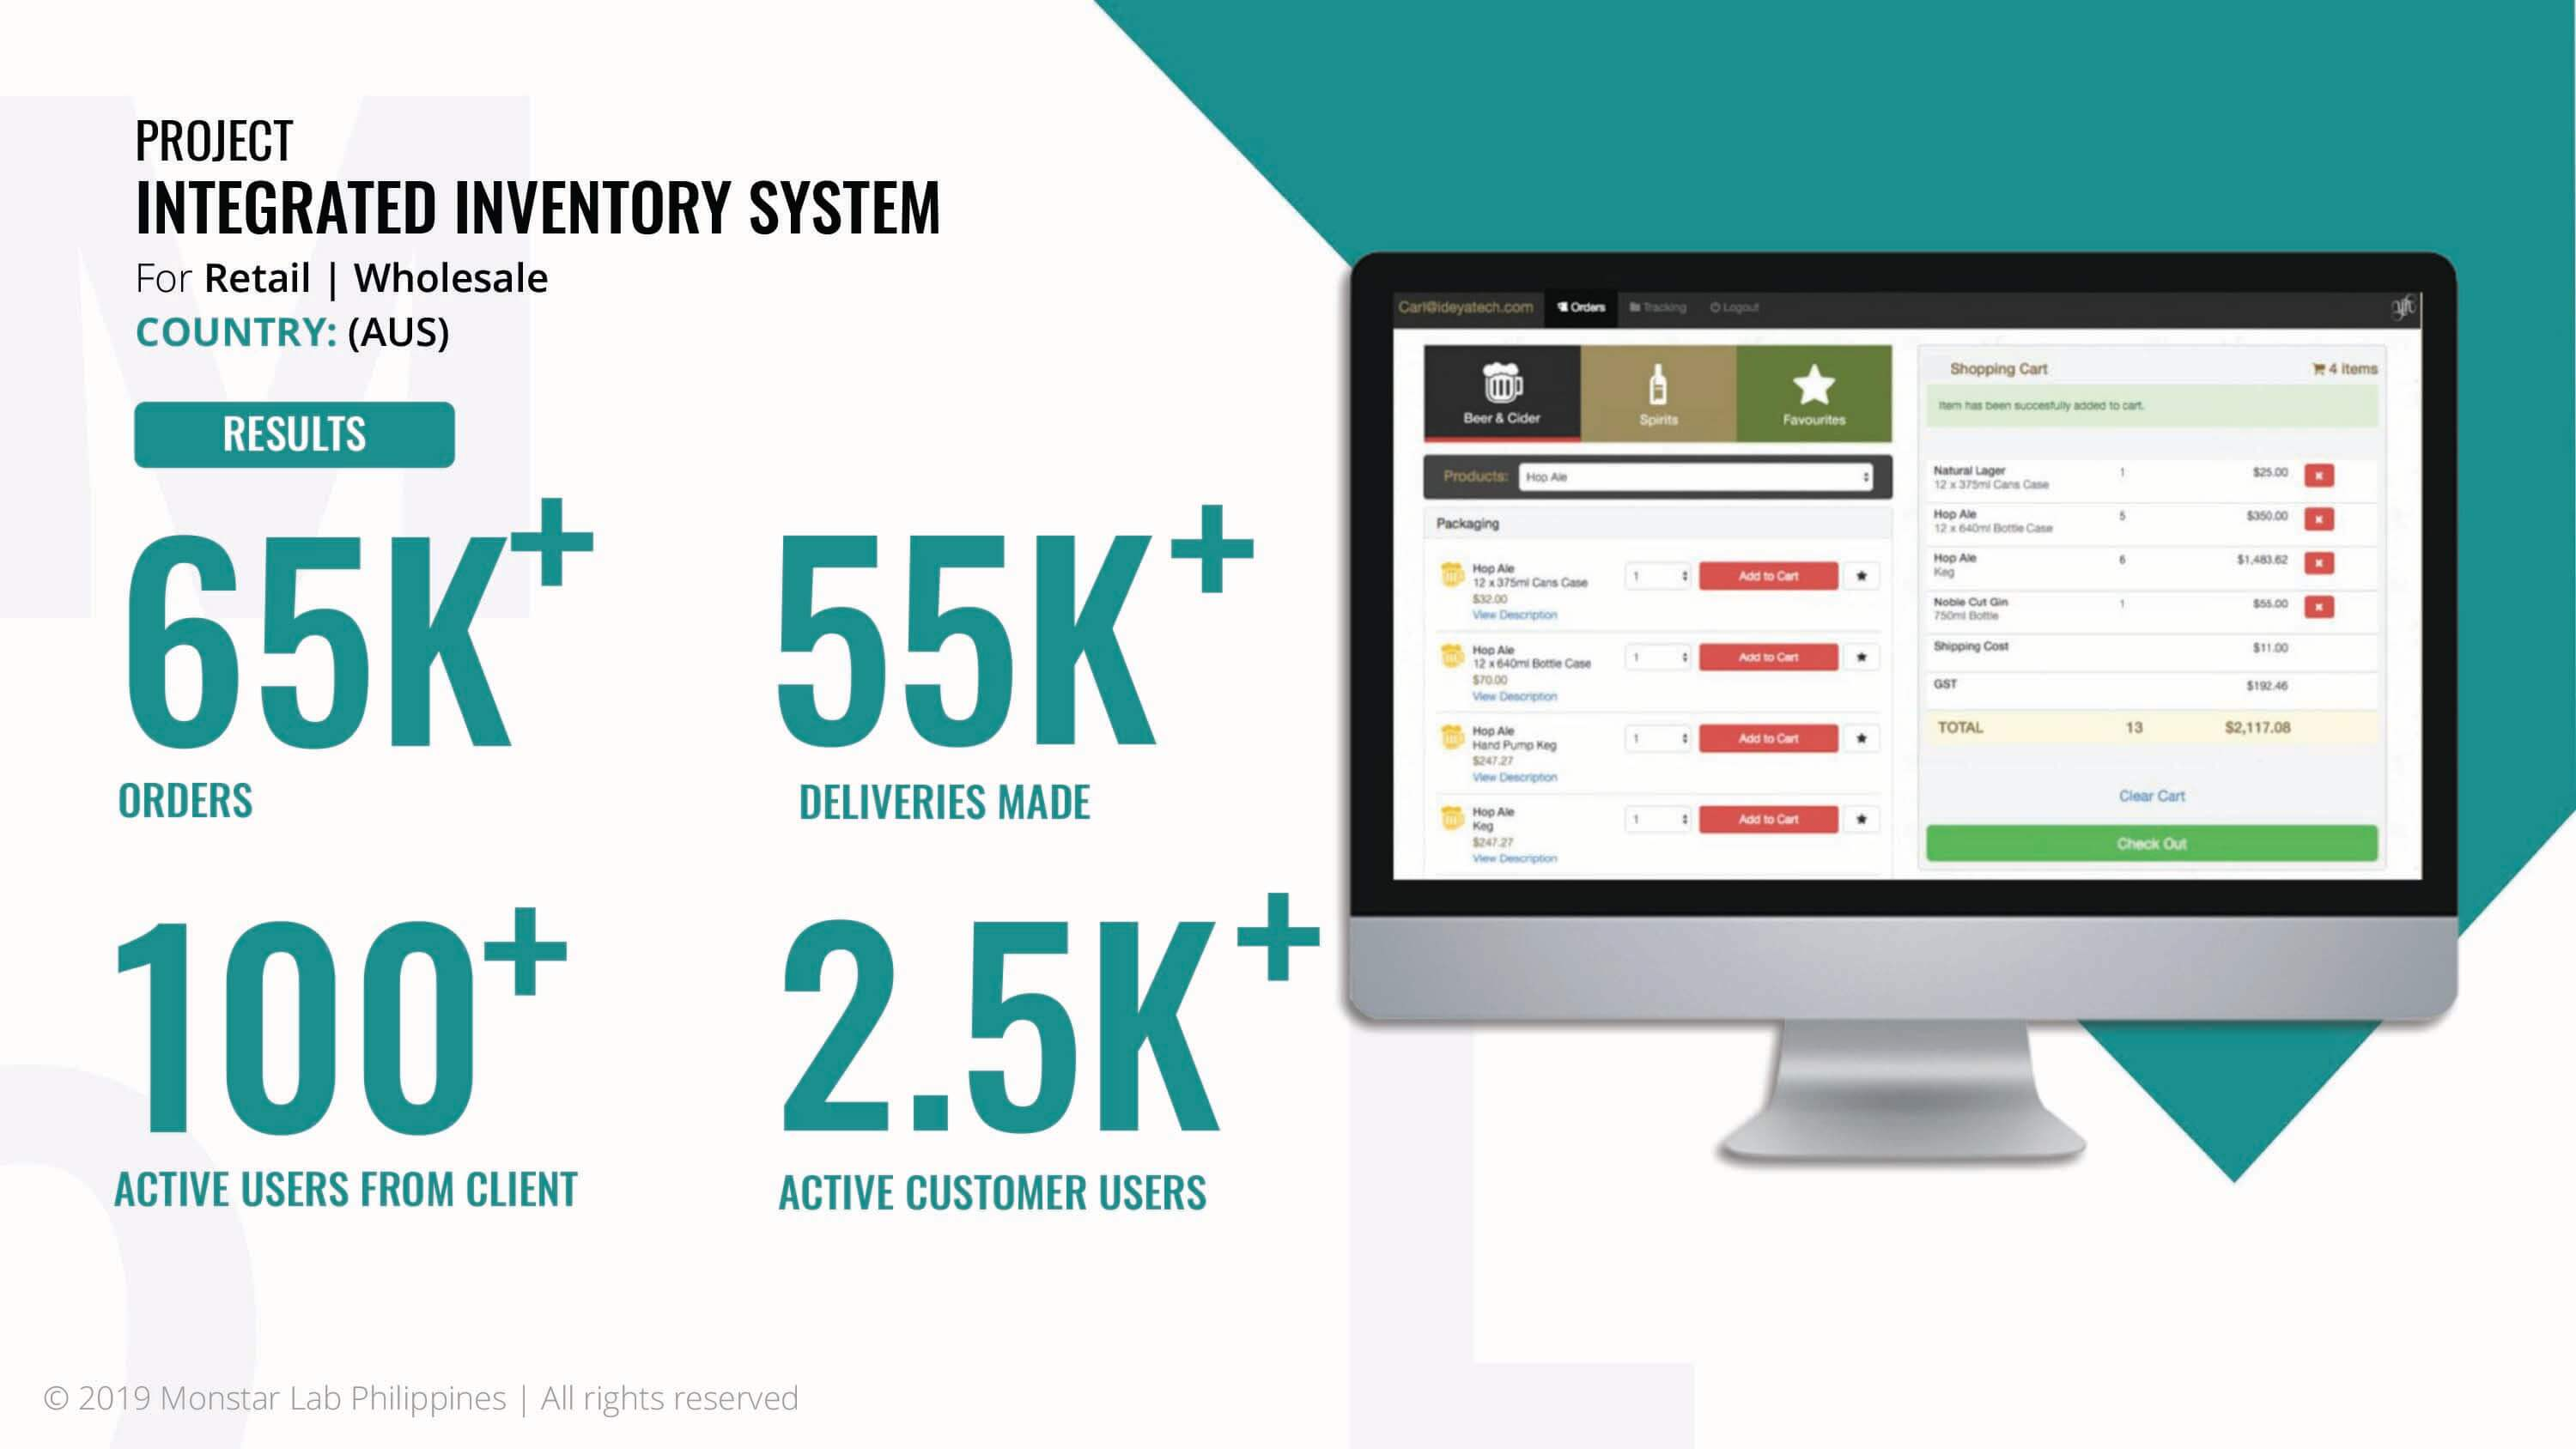 Web application development, Monstar Lab PH integrated inventory system case study results